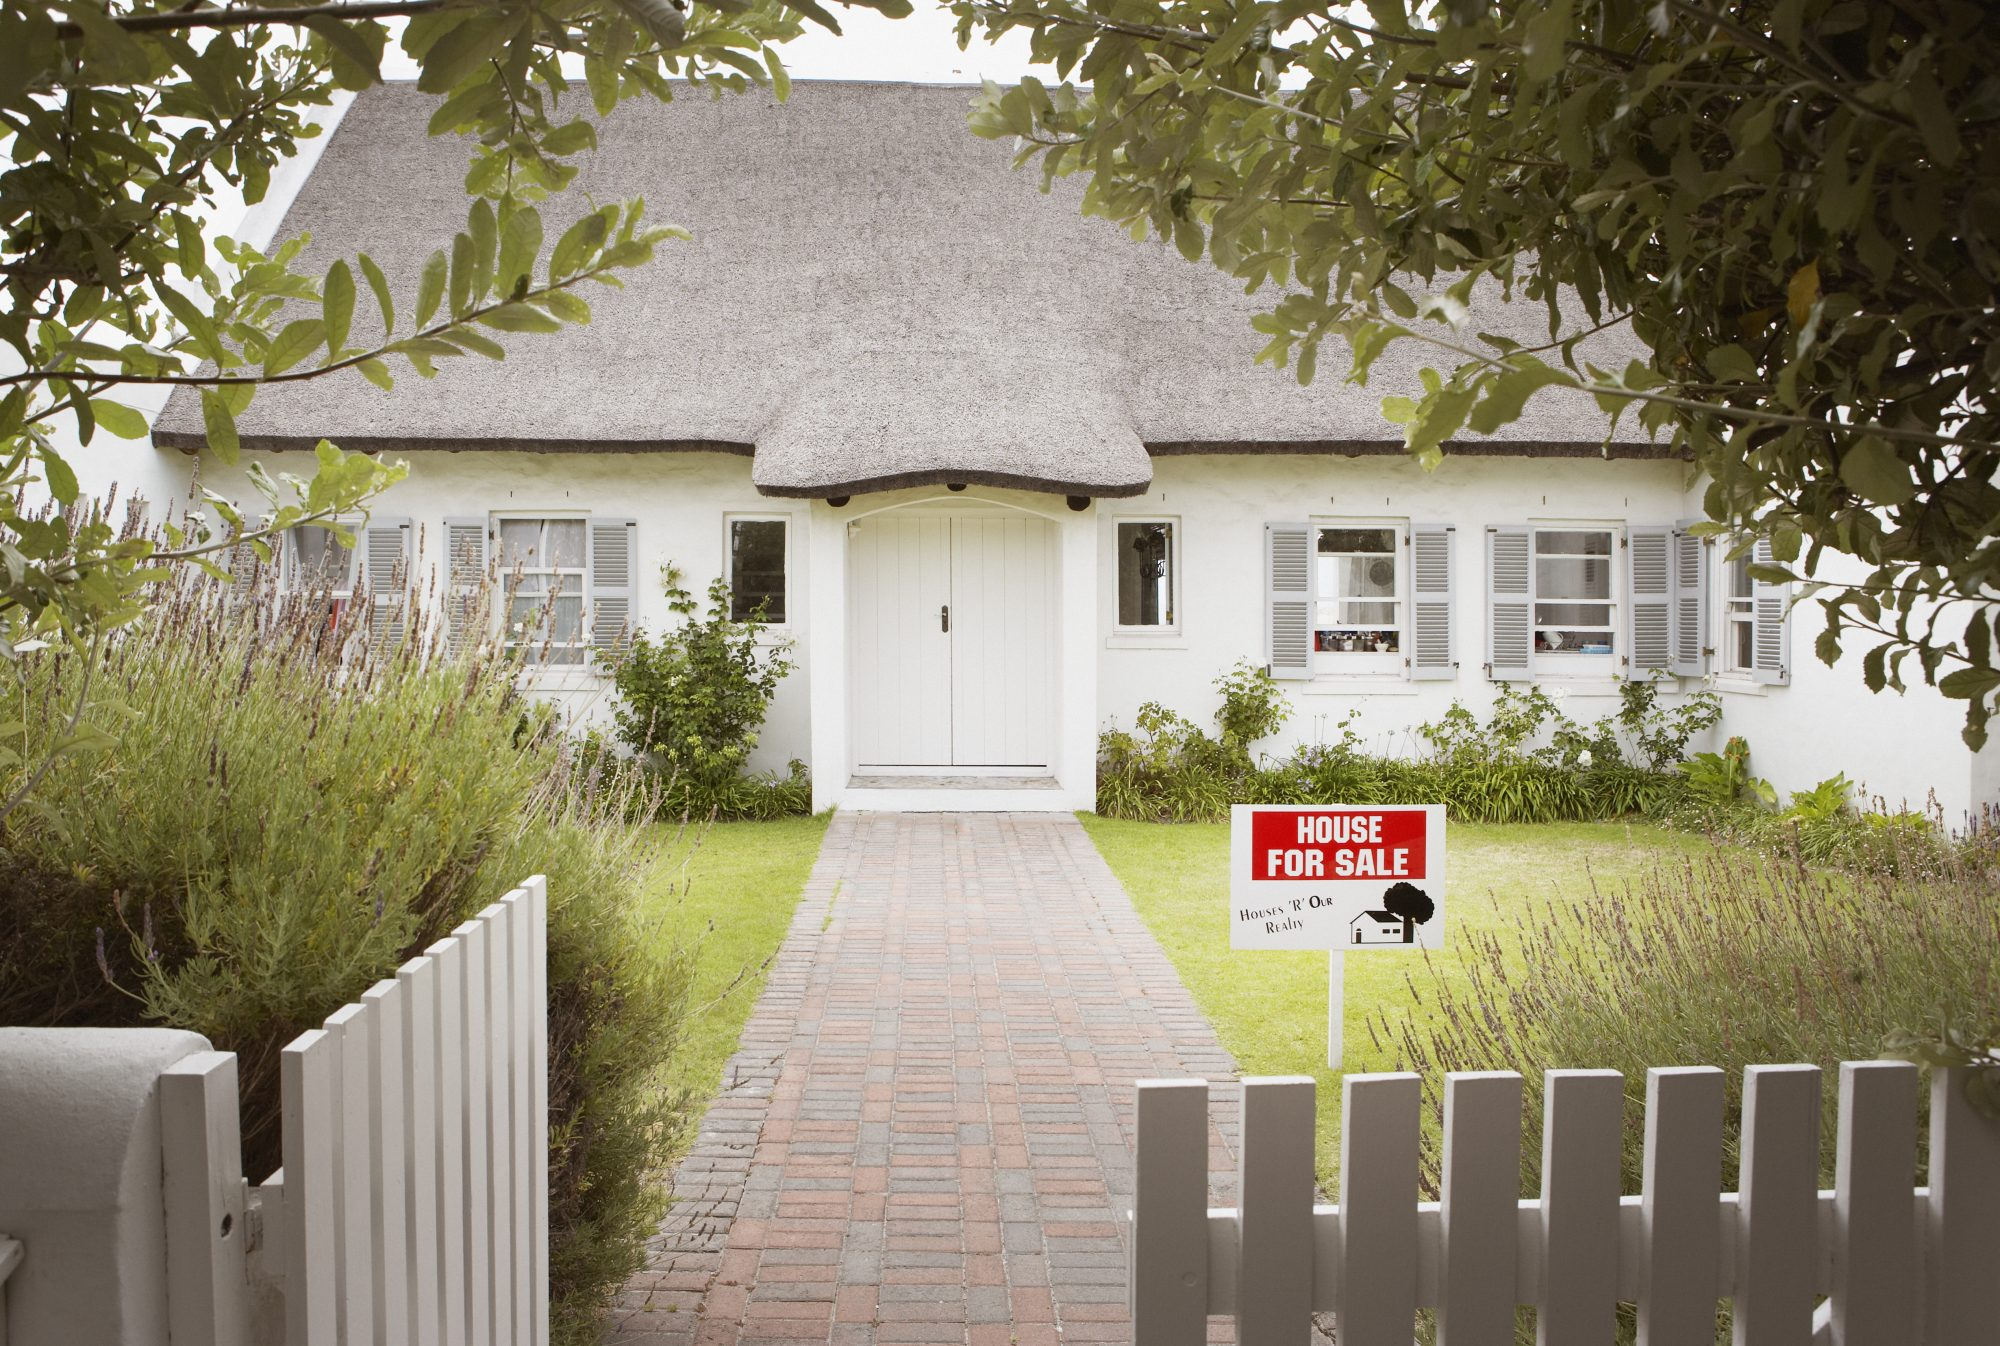 house for sale with white picket fence